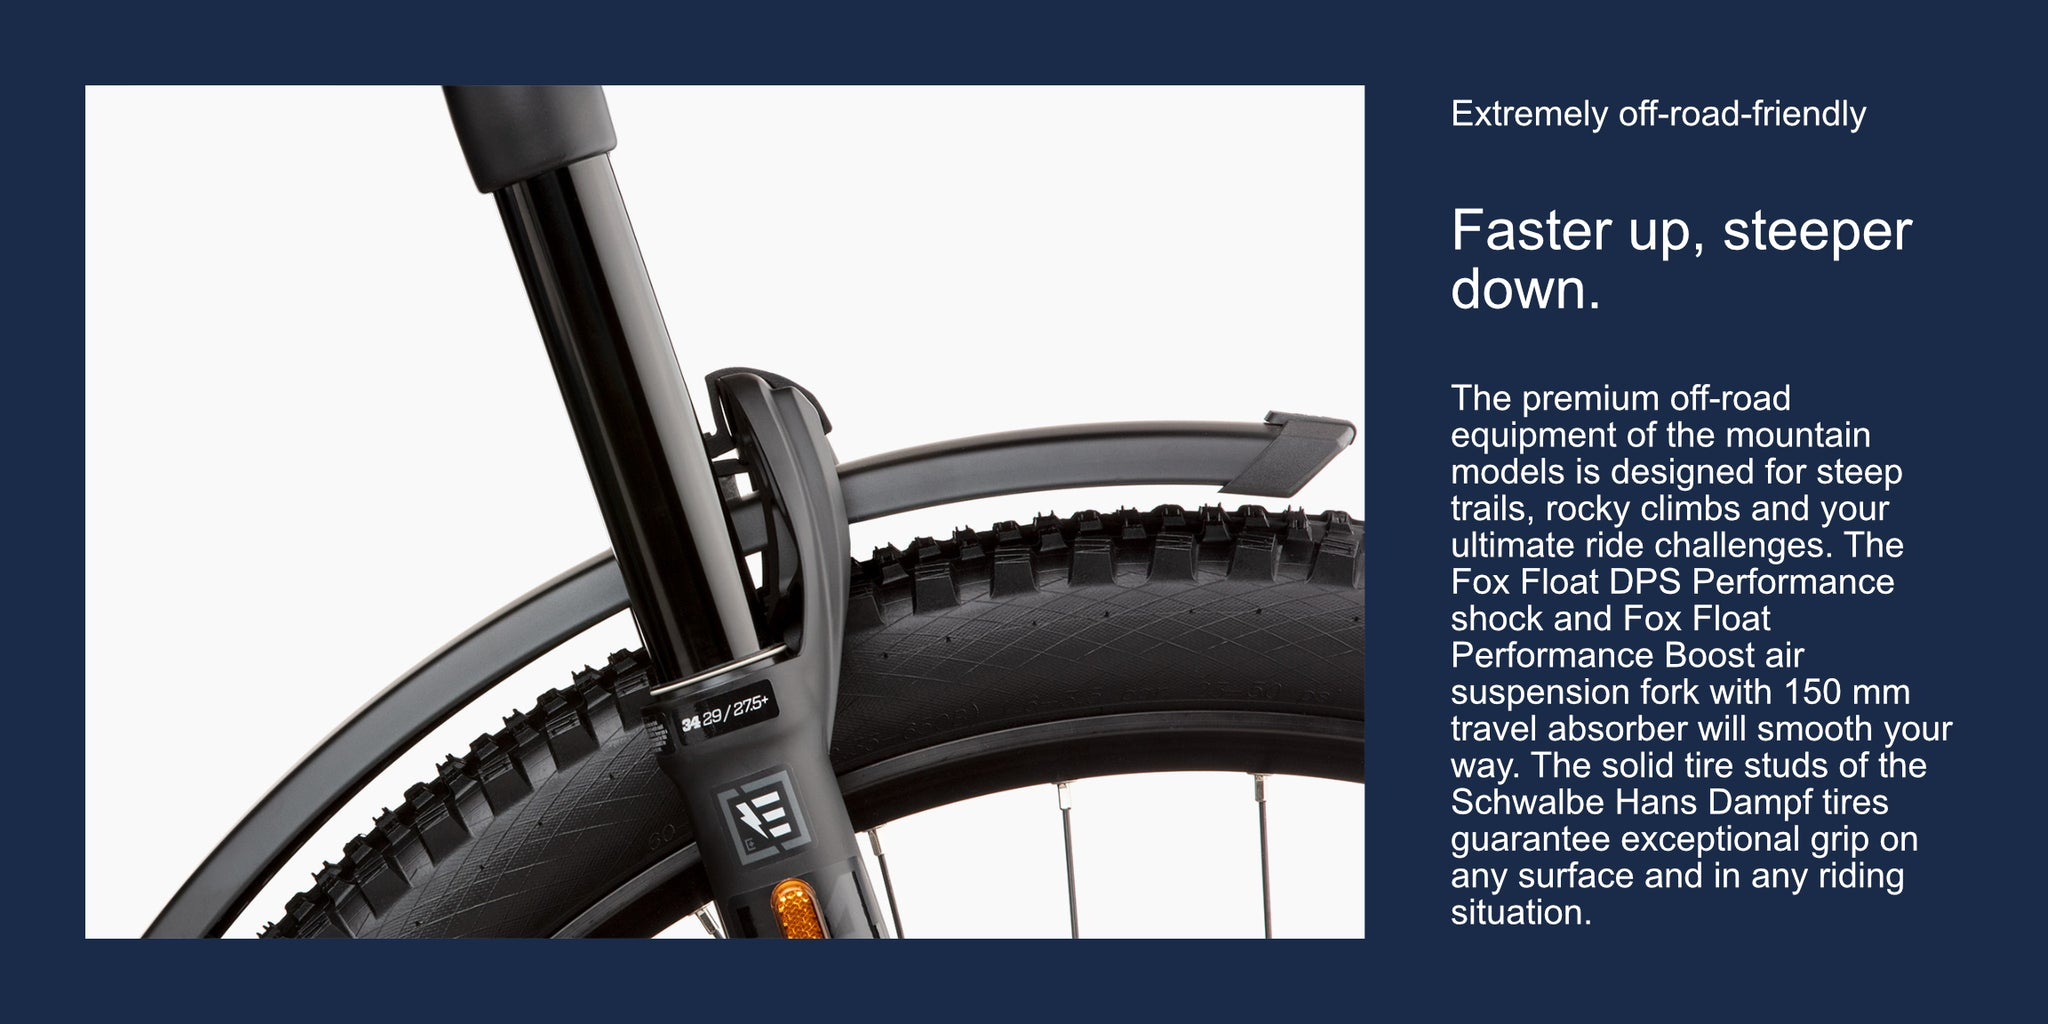 Extremely off-road-friendly